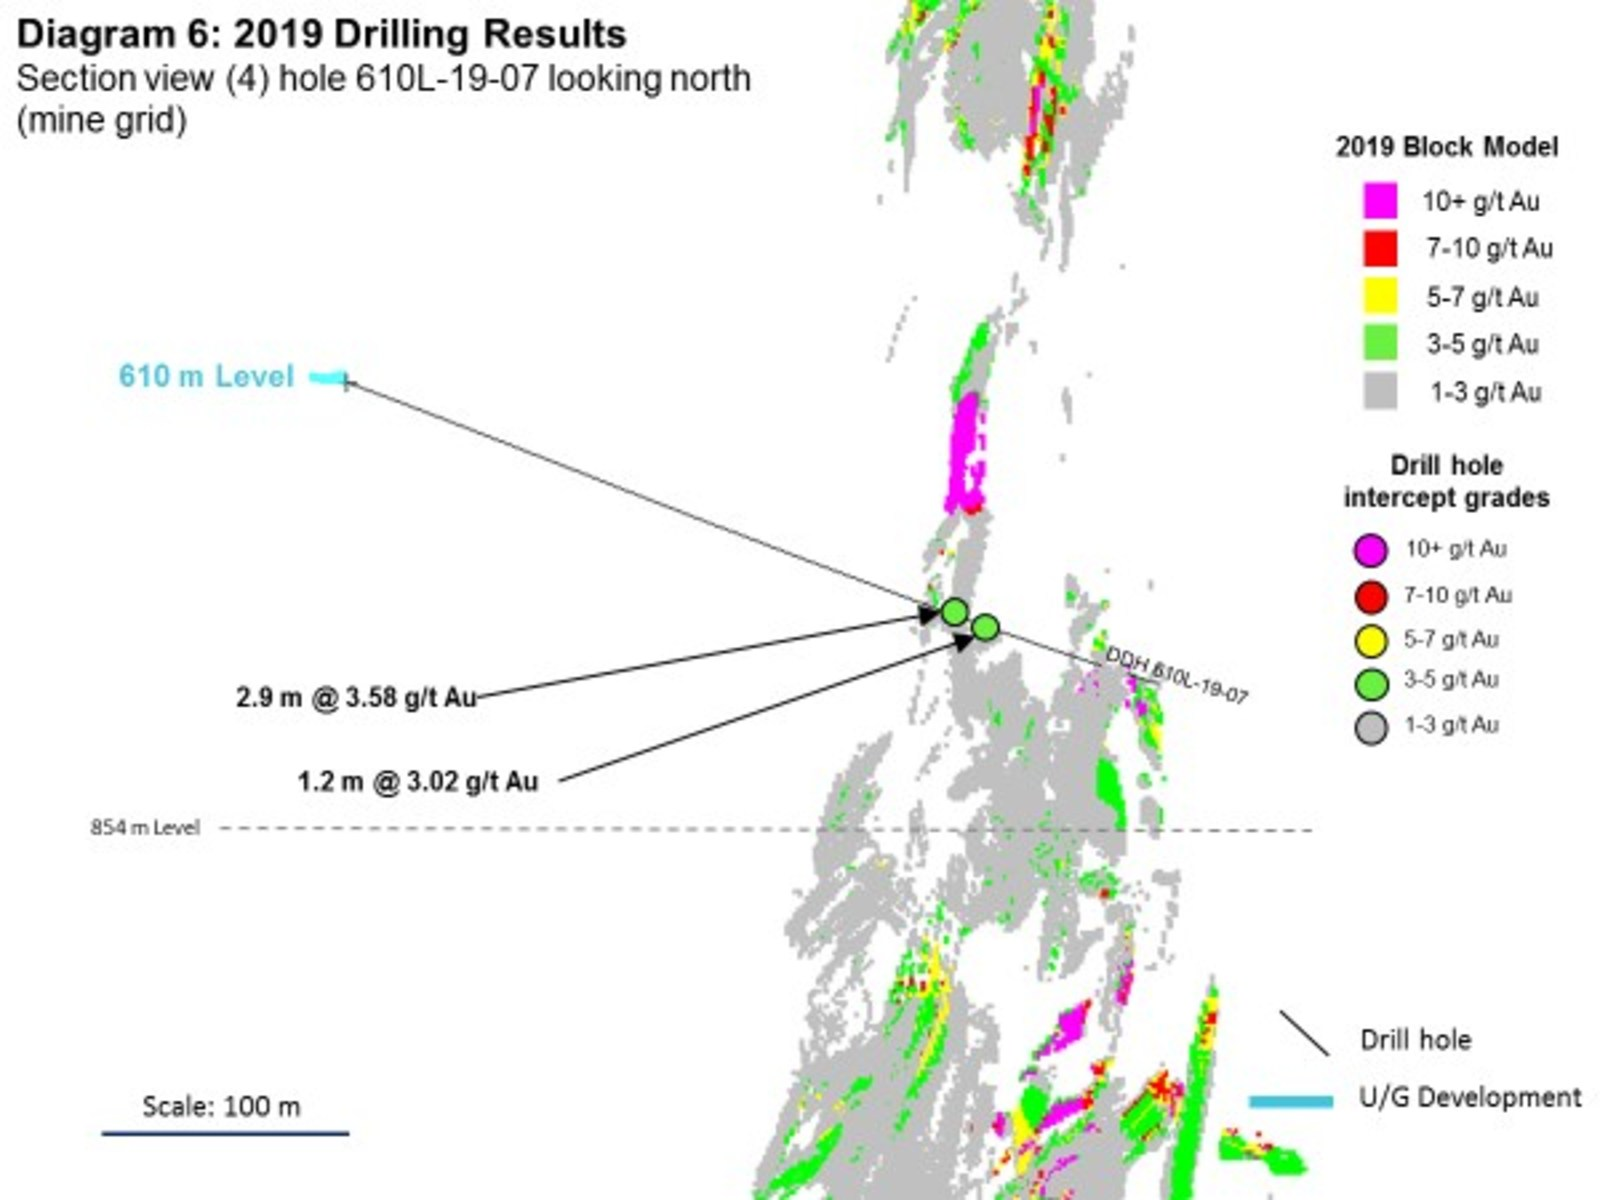 Diagram 6: 2019 Drilling Results